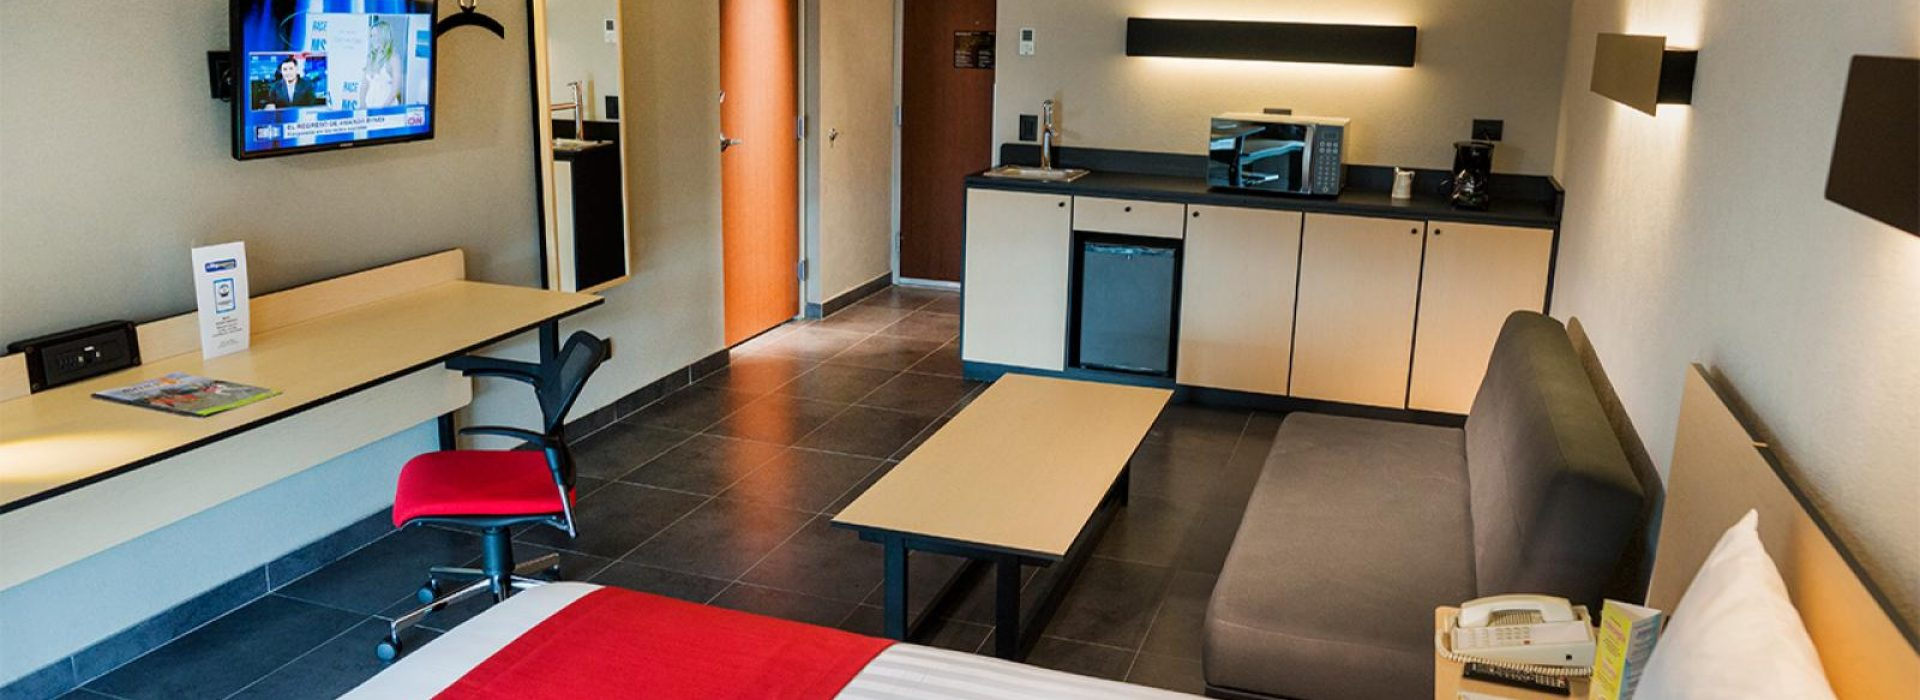 hotel-cali-colombia-city-express-plus-habitacion-suite